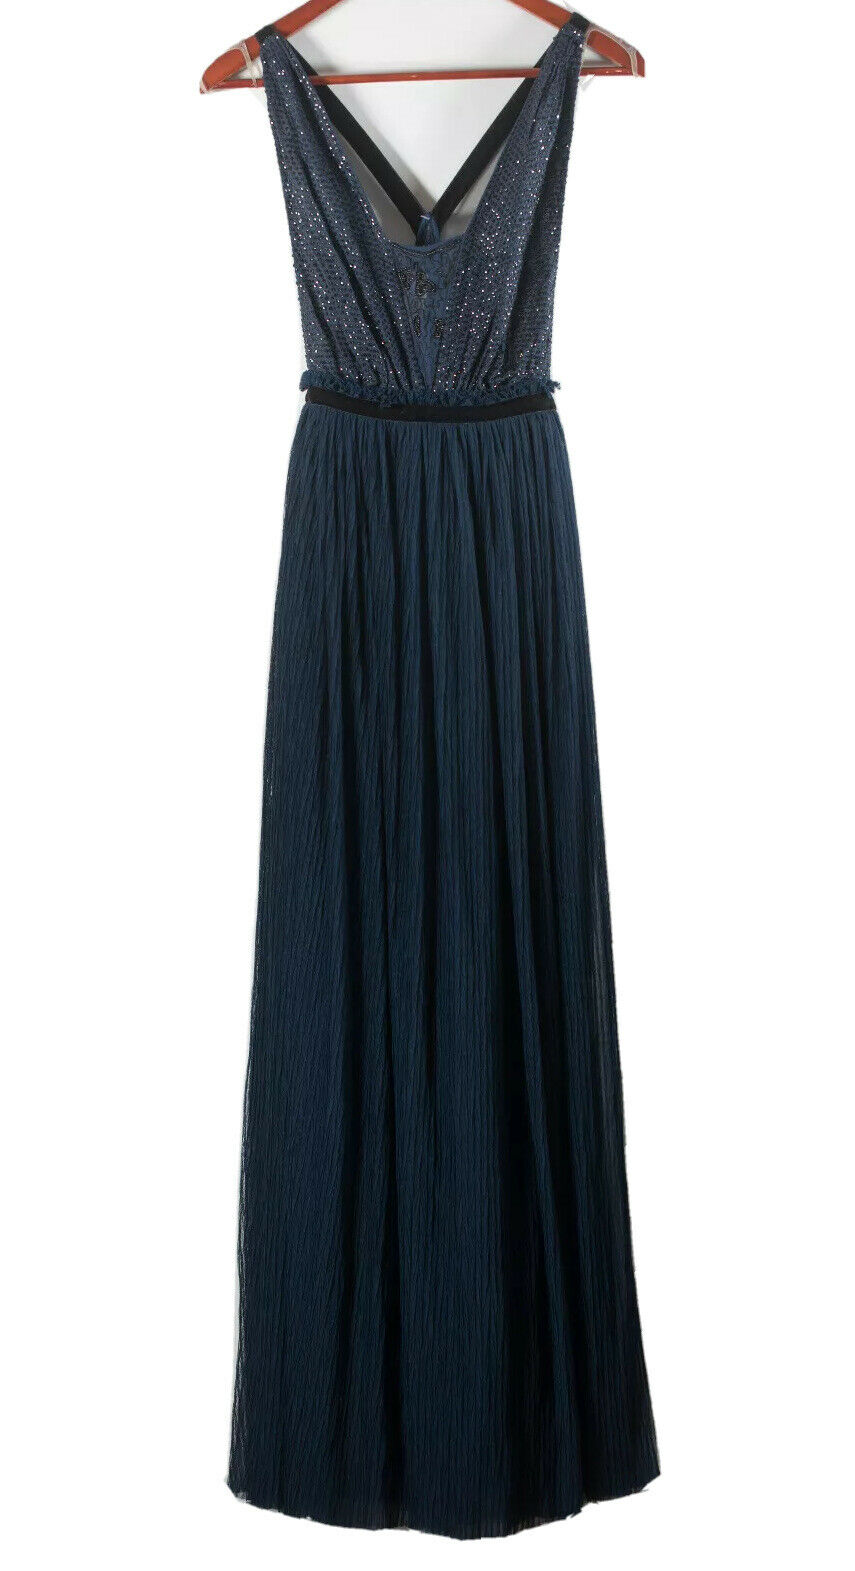 Free People Womans 0 XS Navy Blue Gown Rhinestones Sparkle Tulle Mesh Maxi Dress